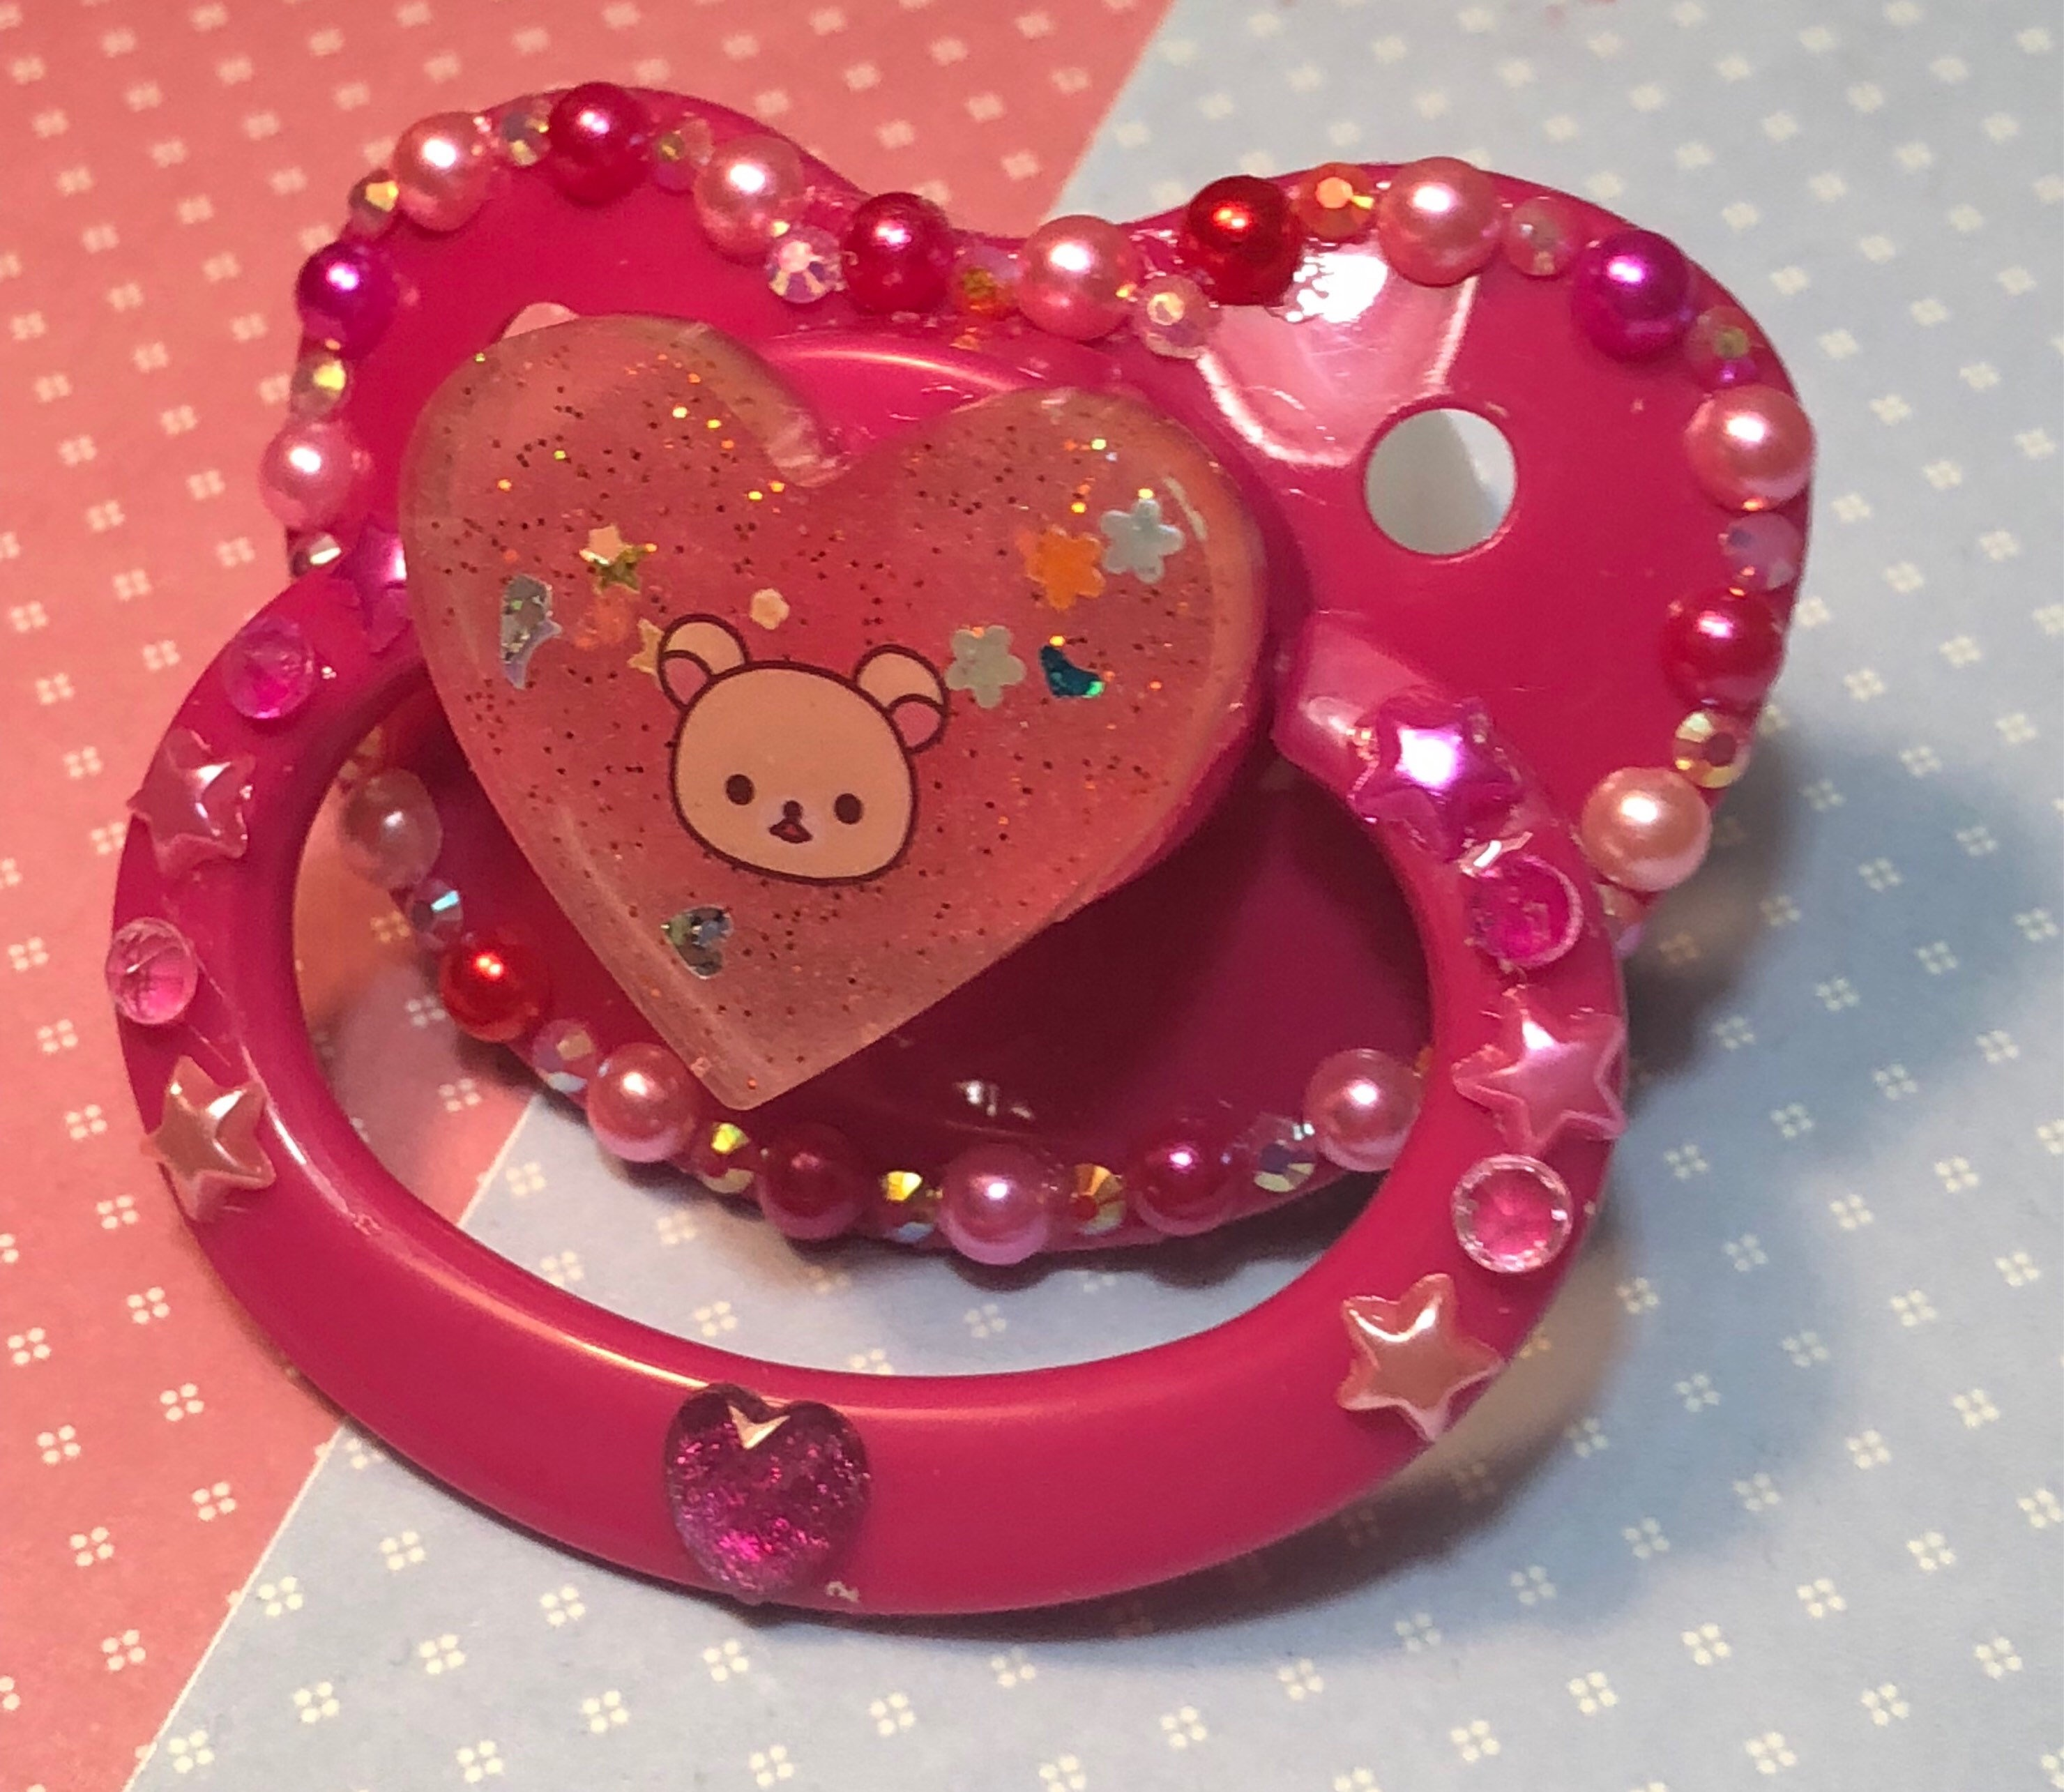 Abdl/Ddlg Hot pink glow in the dark Korilakkuma adult pacifier sold by  Andiel and Owen